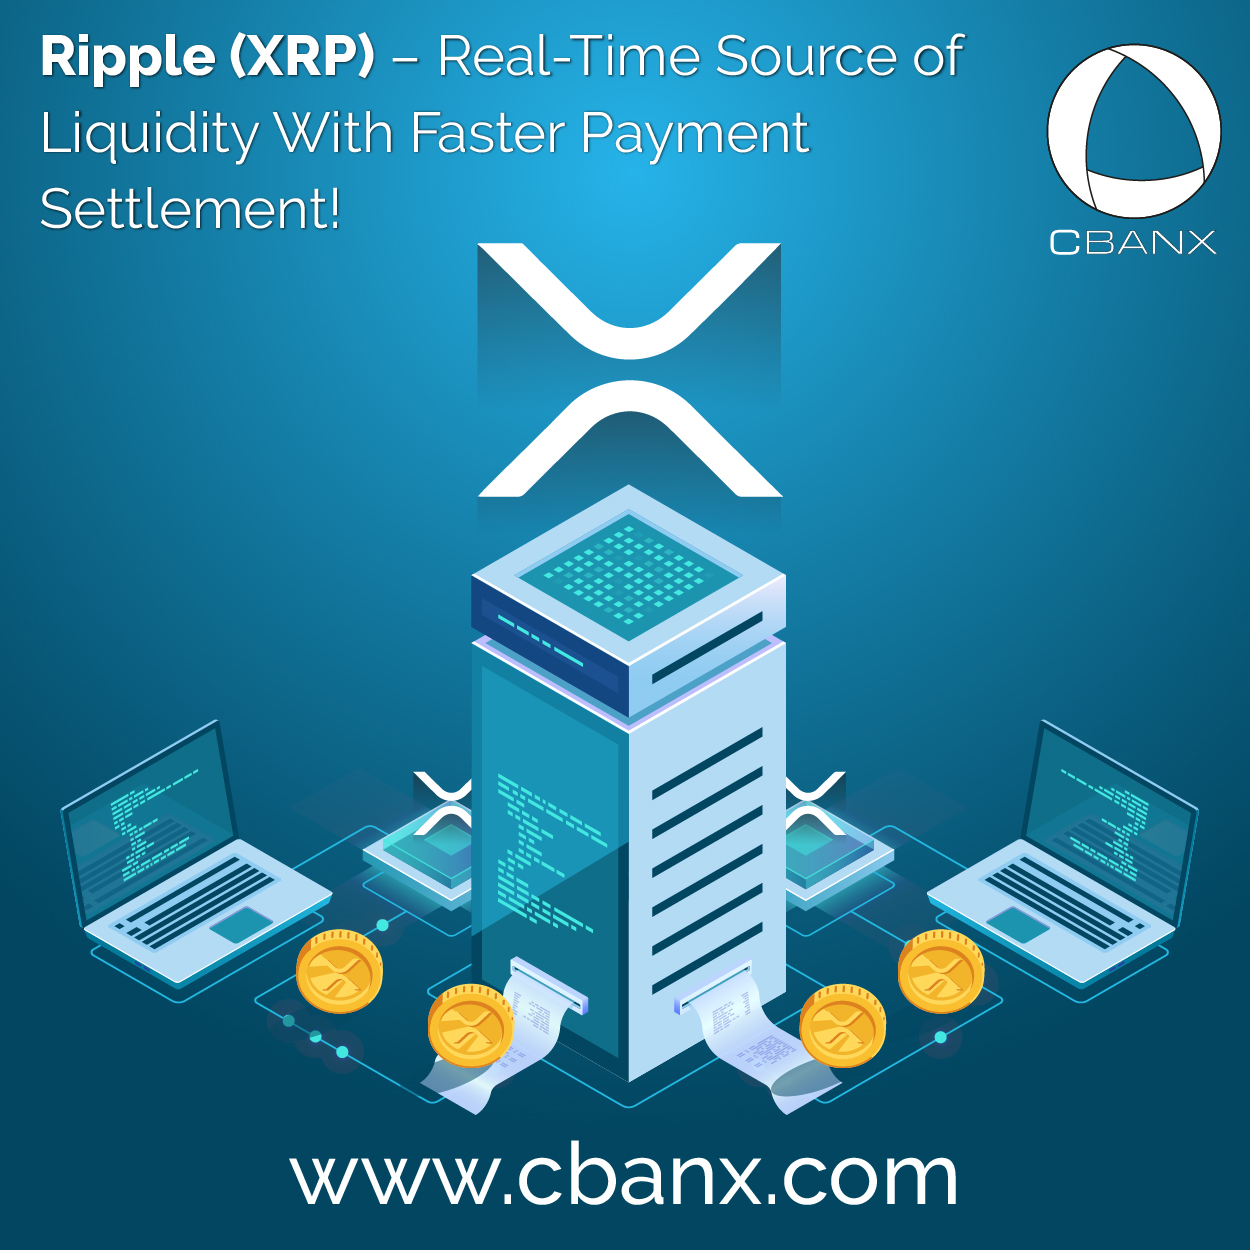 Ripple (XRP) – Real-Time Source of Liquidity With Faster Payment Settlement!